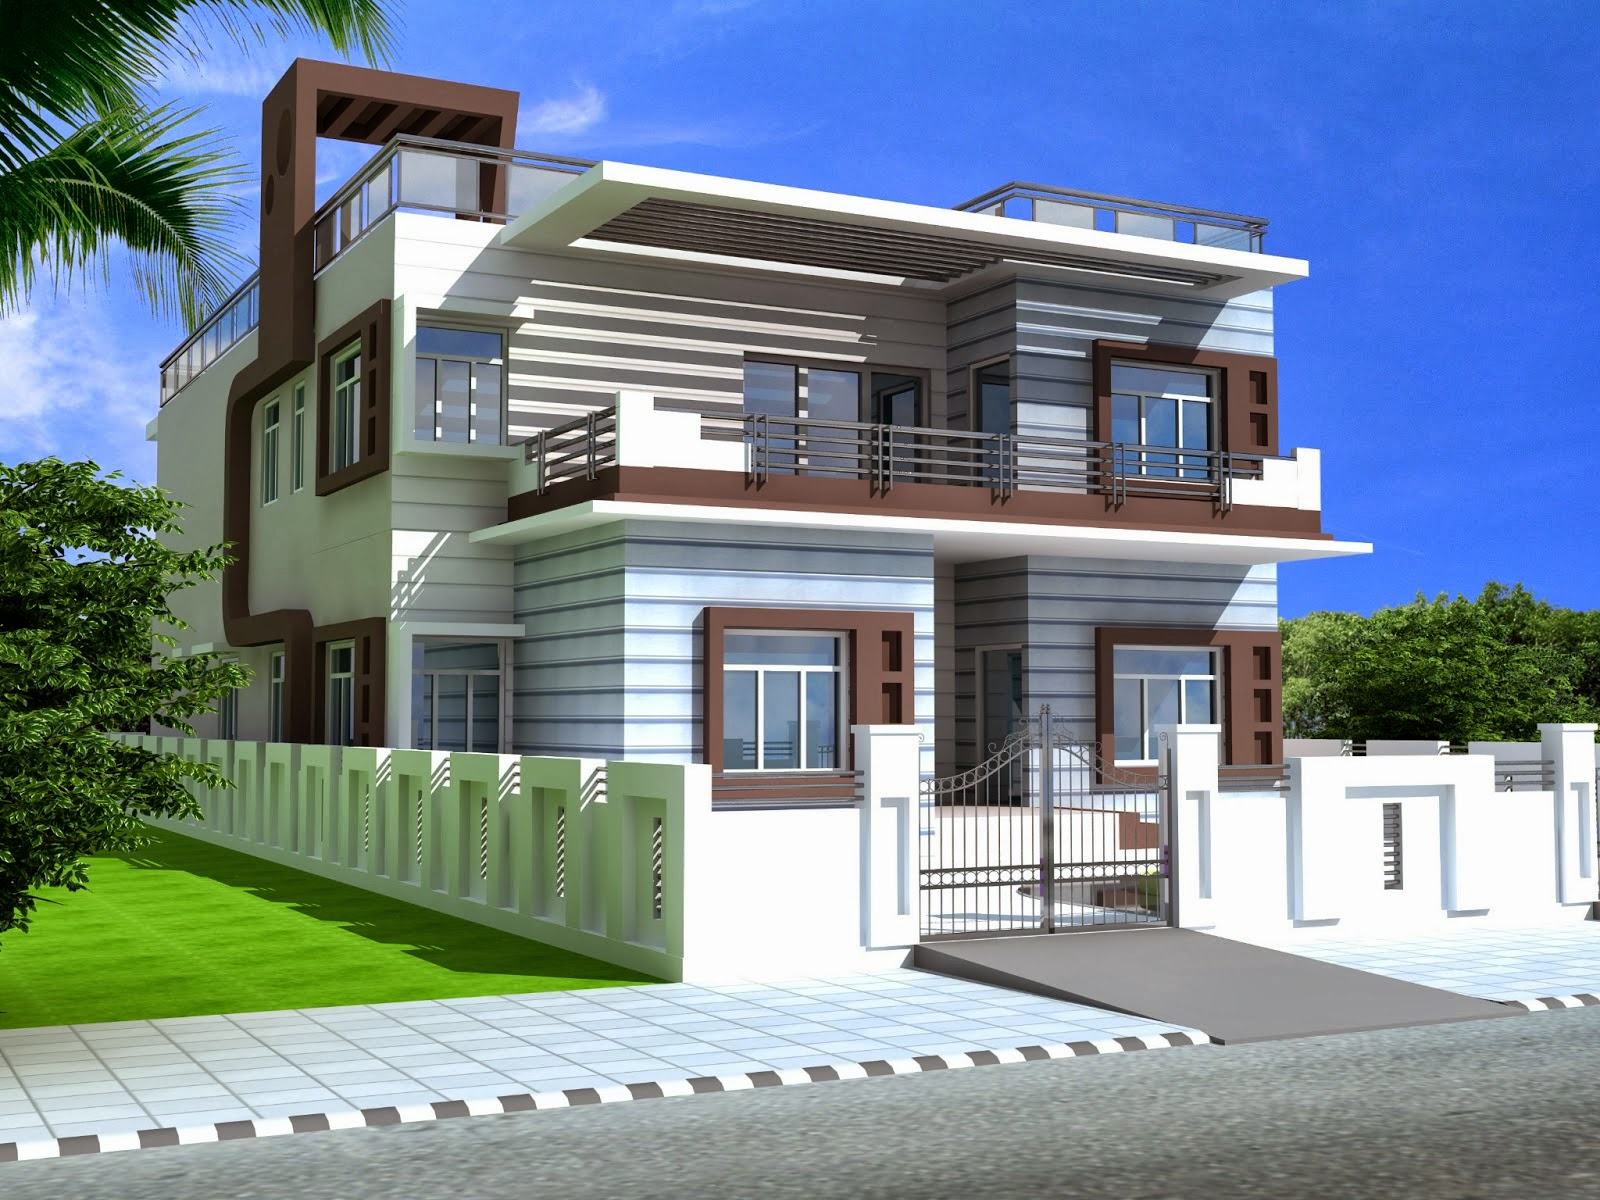 Foundation dezin decor duplex homes 3ds max work for Small duplex house plans in india